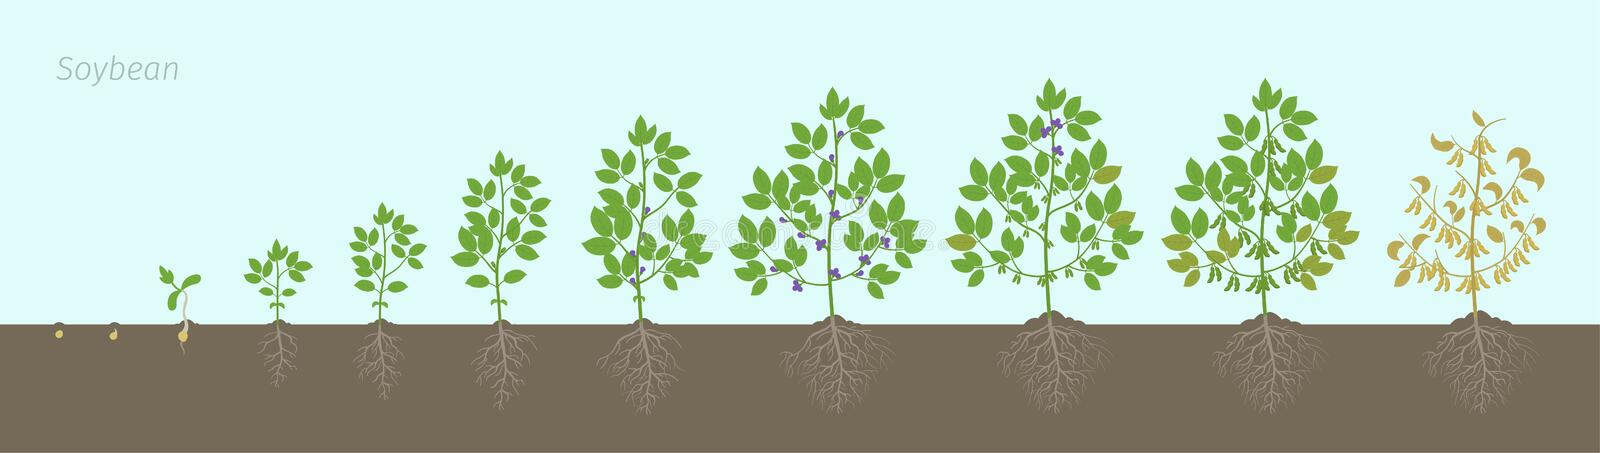 Growth stages of Soybean plant with roots In the soil. Soya bean phases set ripening period. Glycine max life cycle, animation. Growth stages of Soybean plant stock illustration